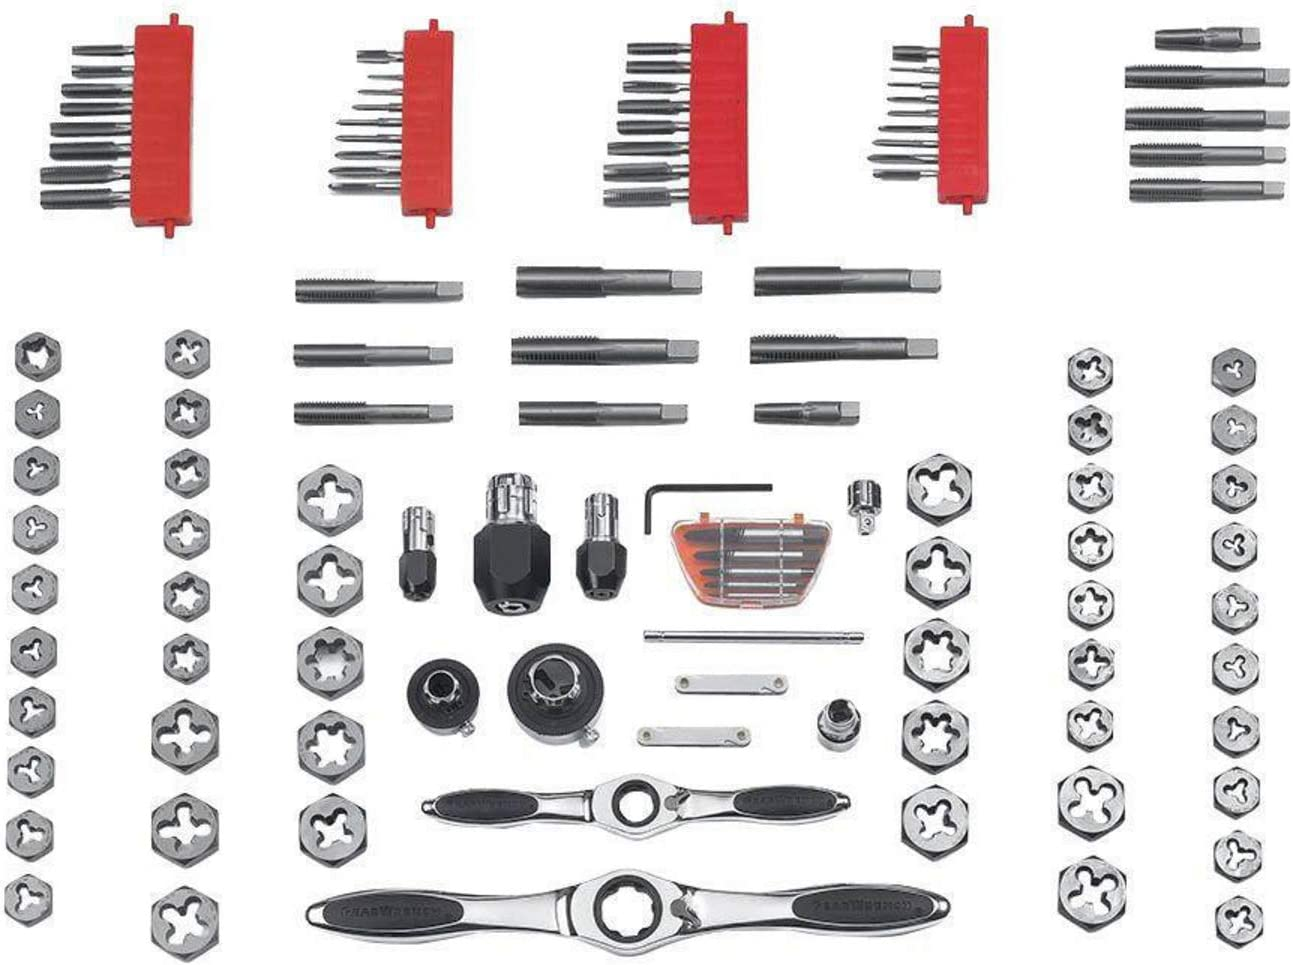 GEARWRENCH Ratcheting Tap and Die Set